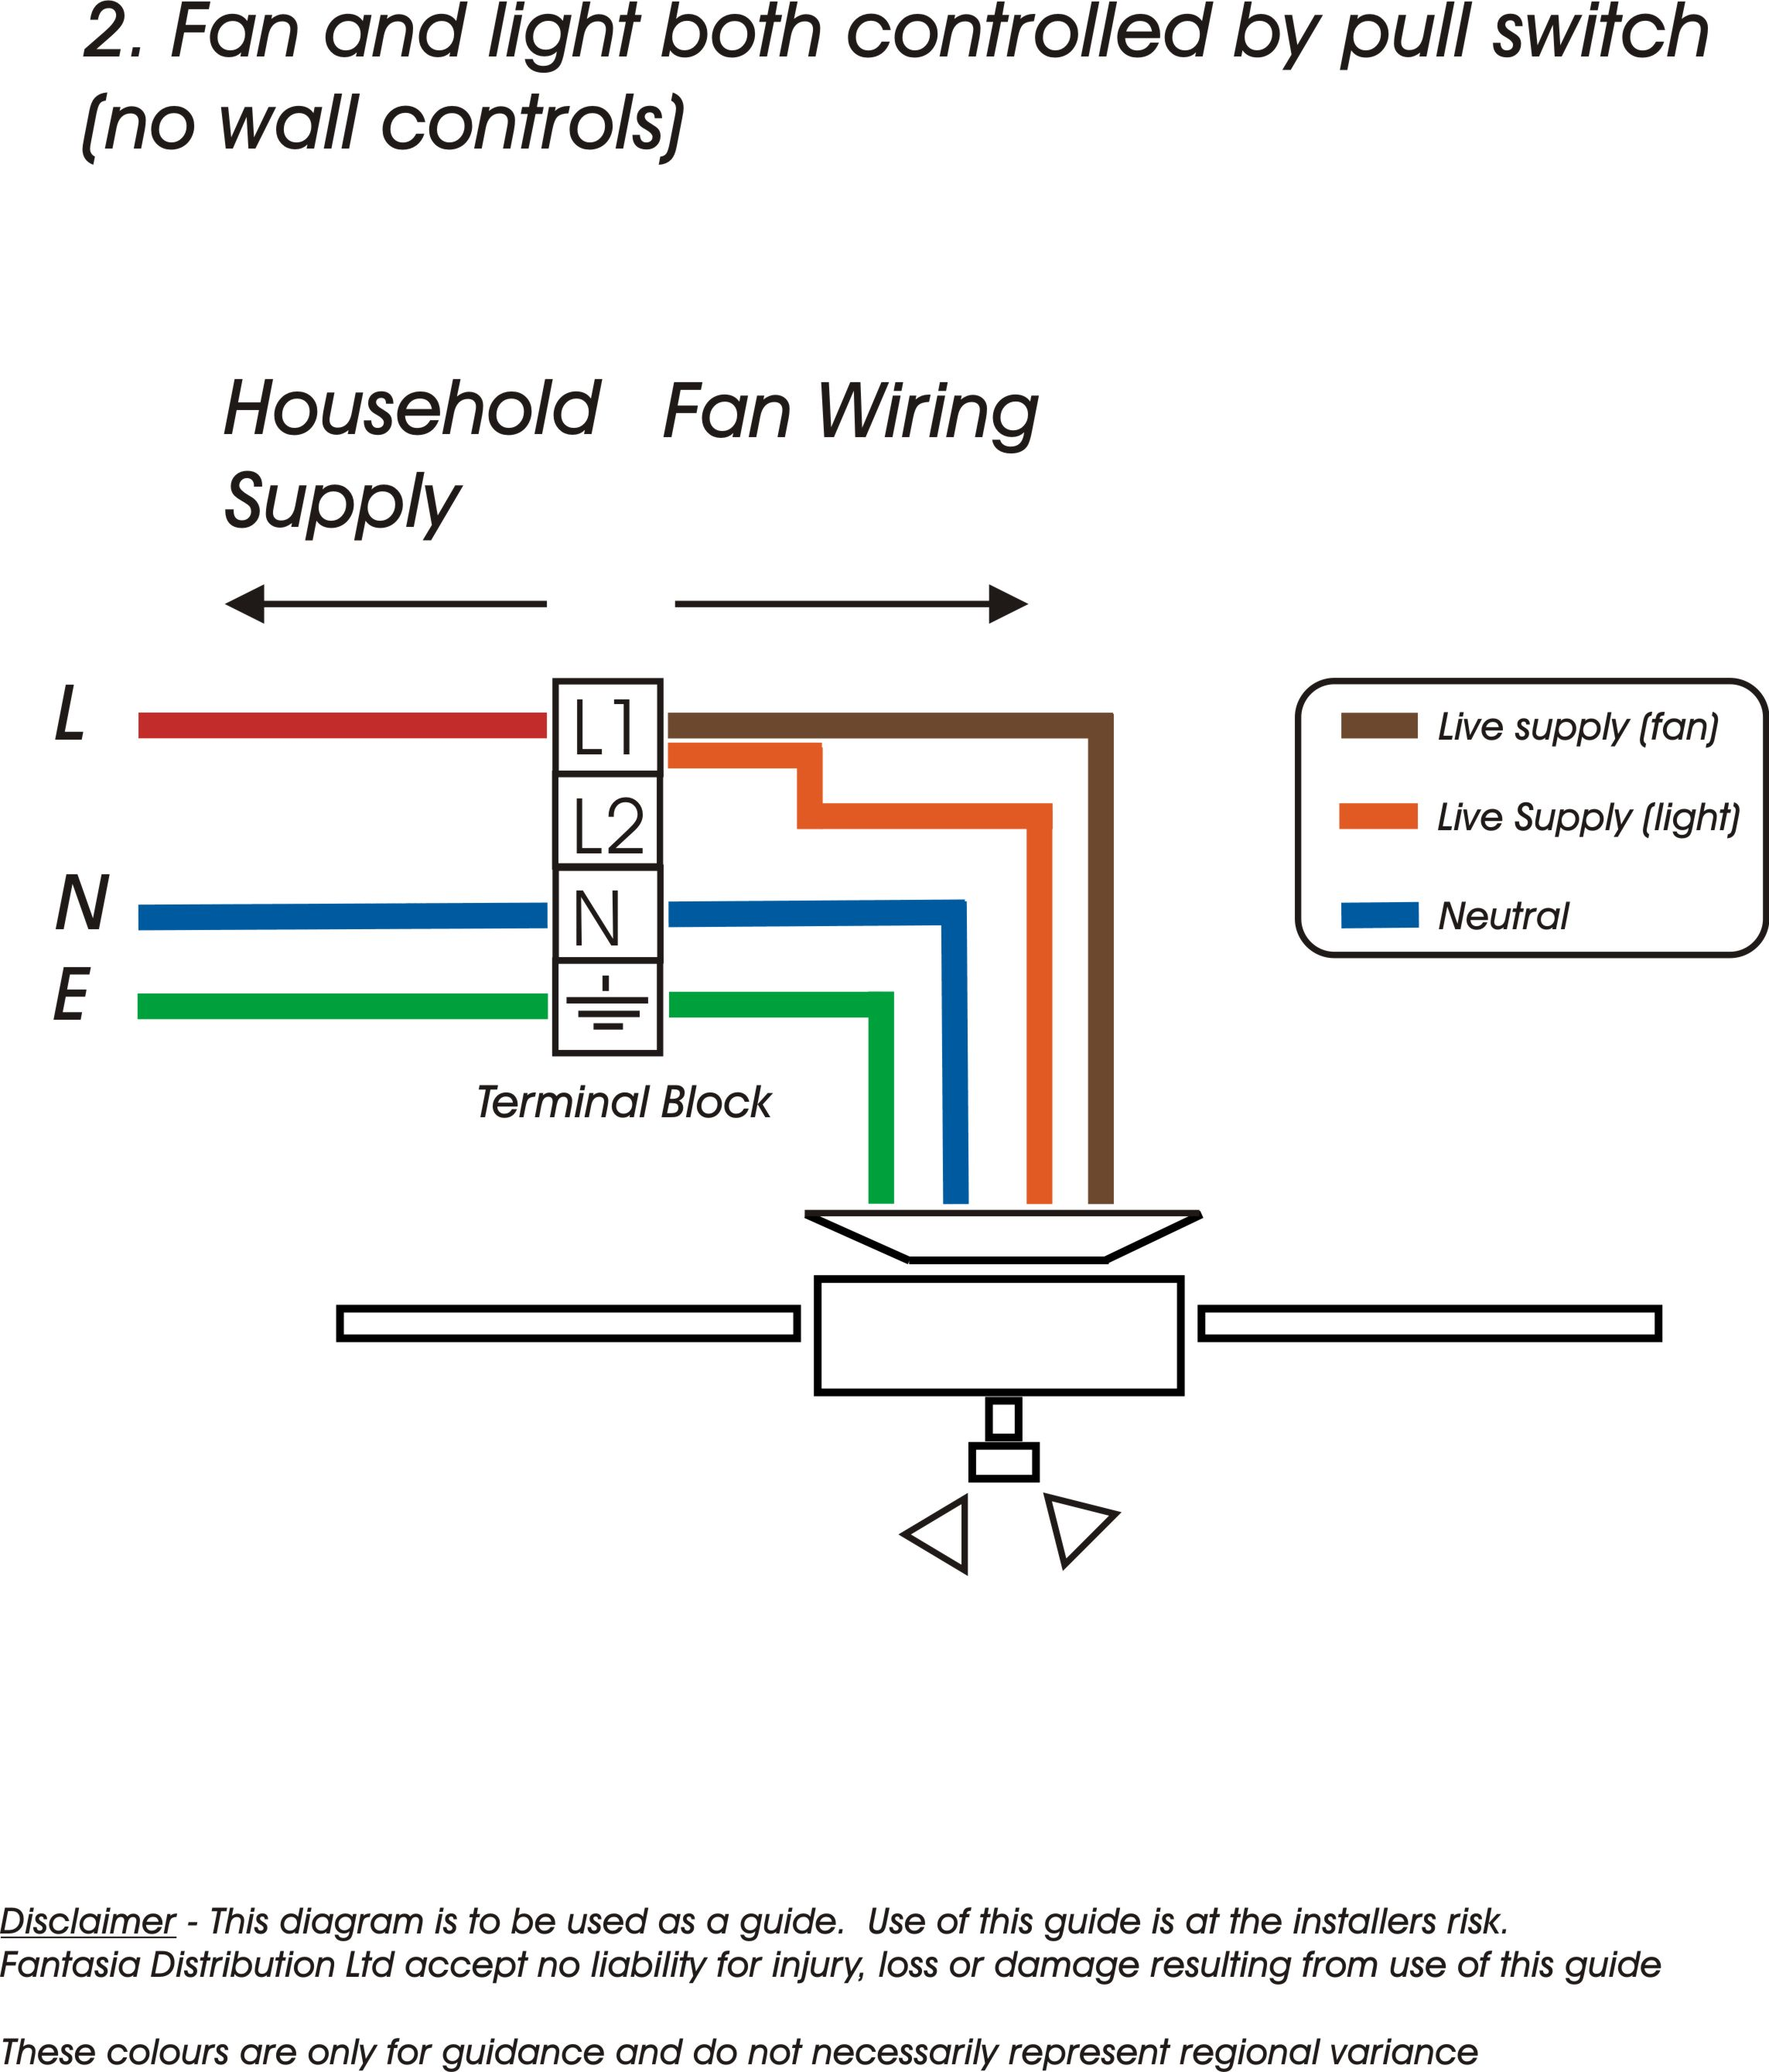 wiring ceiling fans 2 hampton bay ceiling fan motor wiring diagram integralbook com  at readyjetset.co